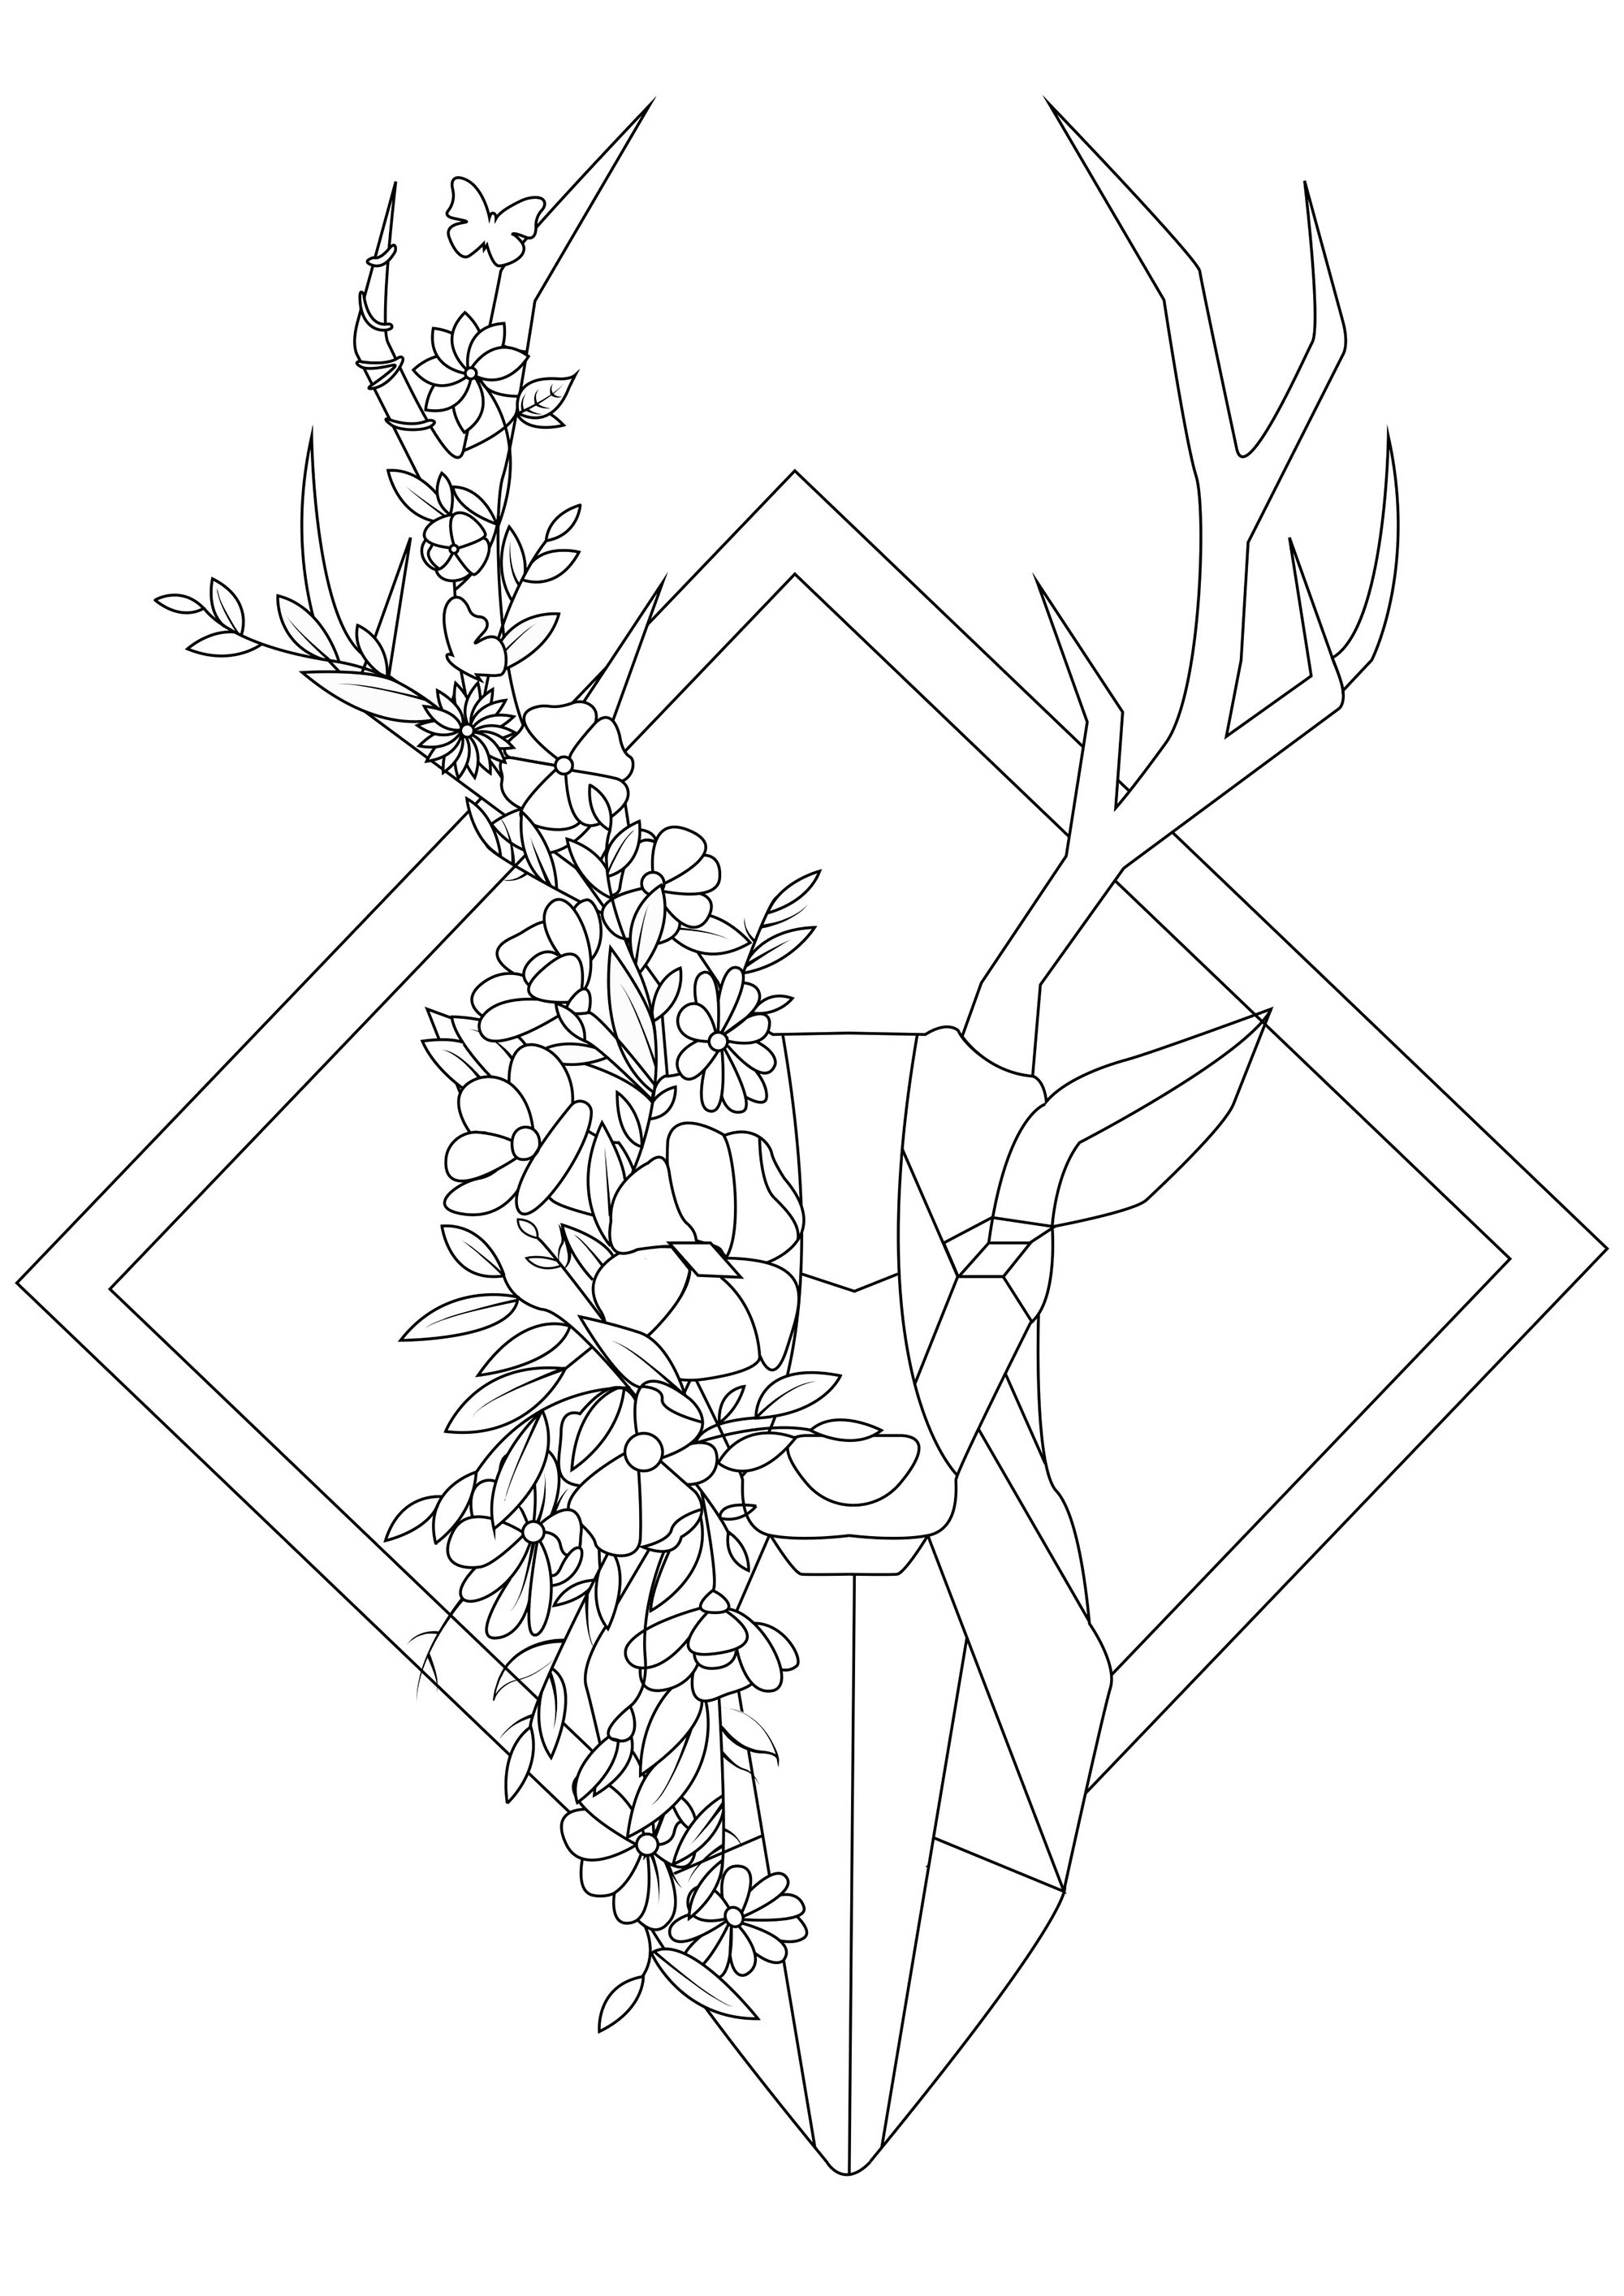 This geometrical coloring inspired by the origami style will be a pleasure to color.